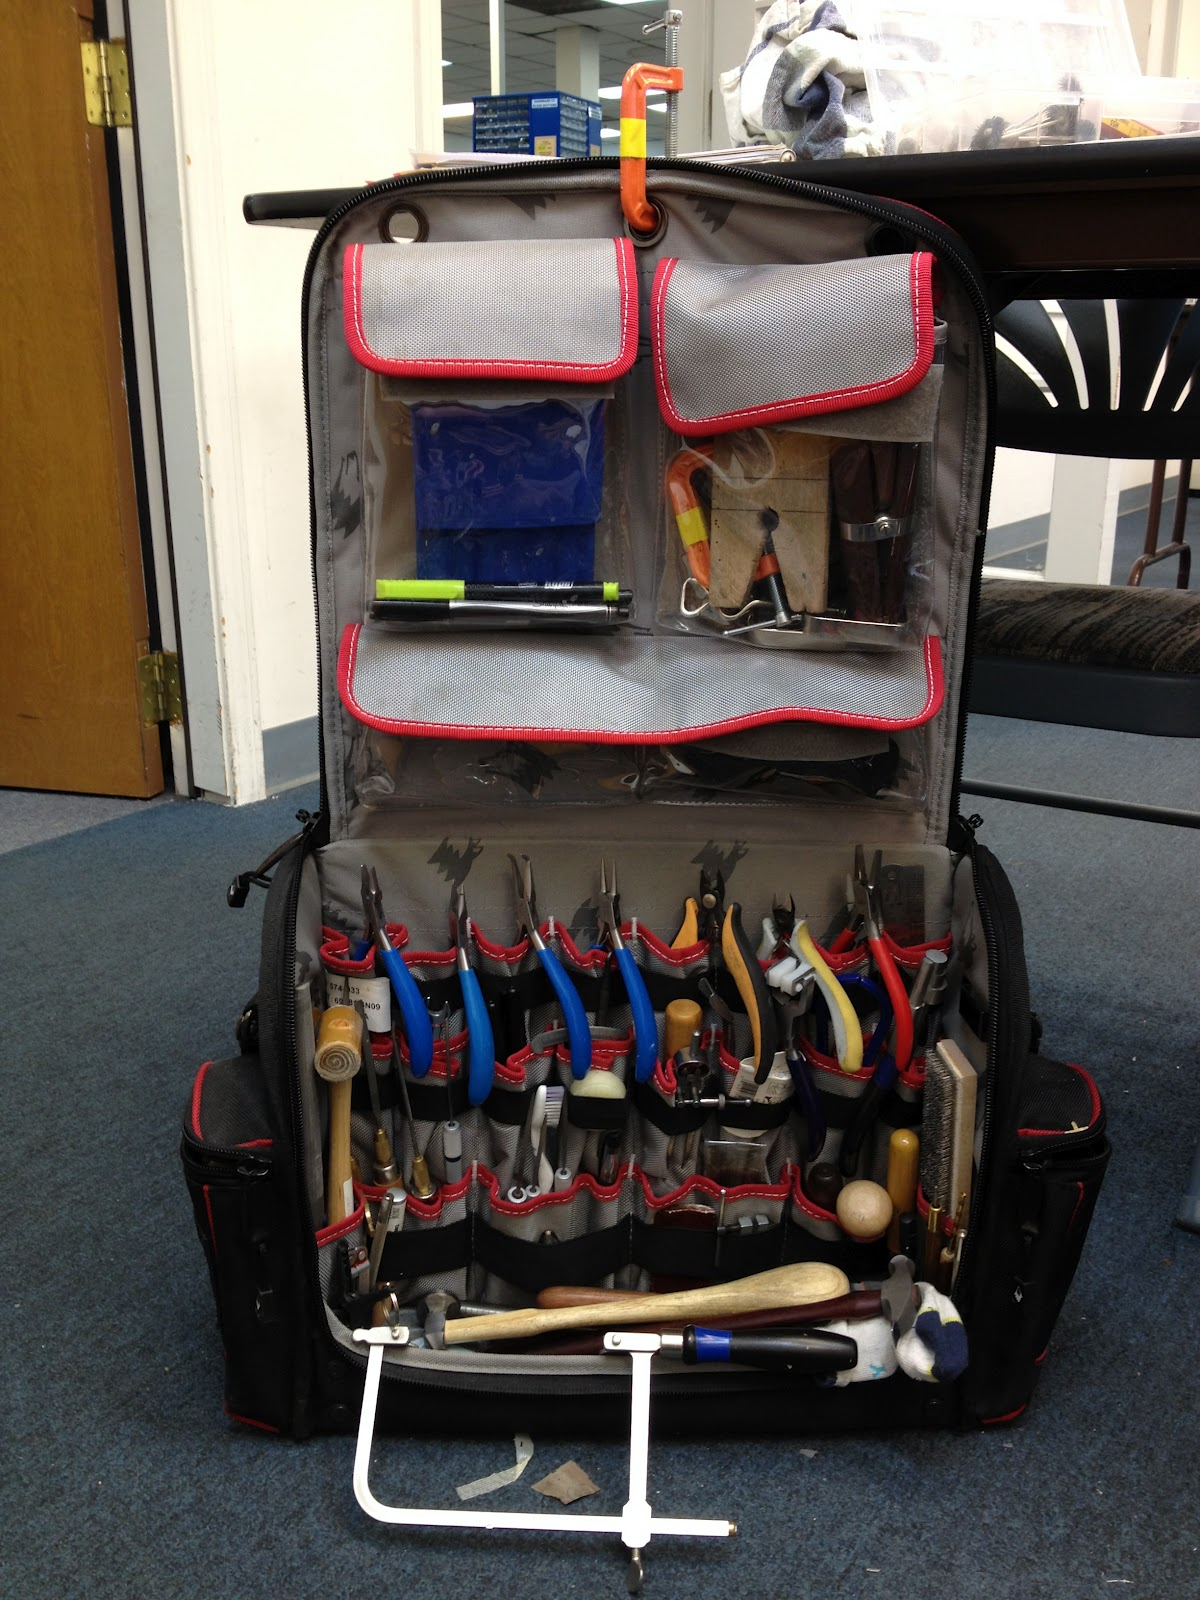 The Bag Has 27 Inside Pockets, 20 Straps For More Tool Storage And 4  Outside Pockets. It Holds 8 Pliers, Multiple Hammers, Bench Block, Large  And Needle ...